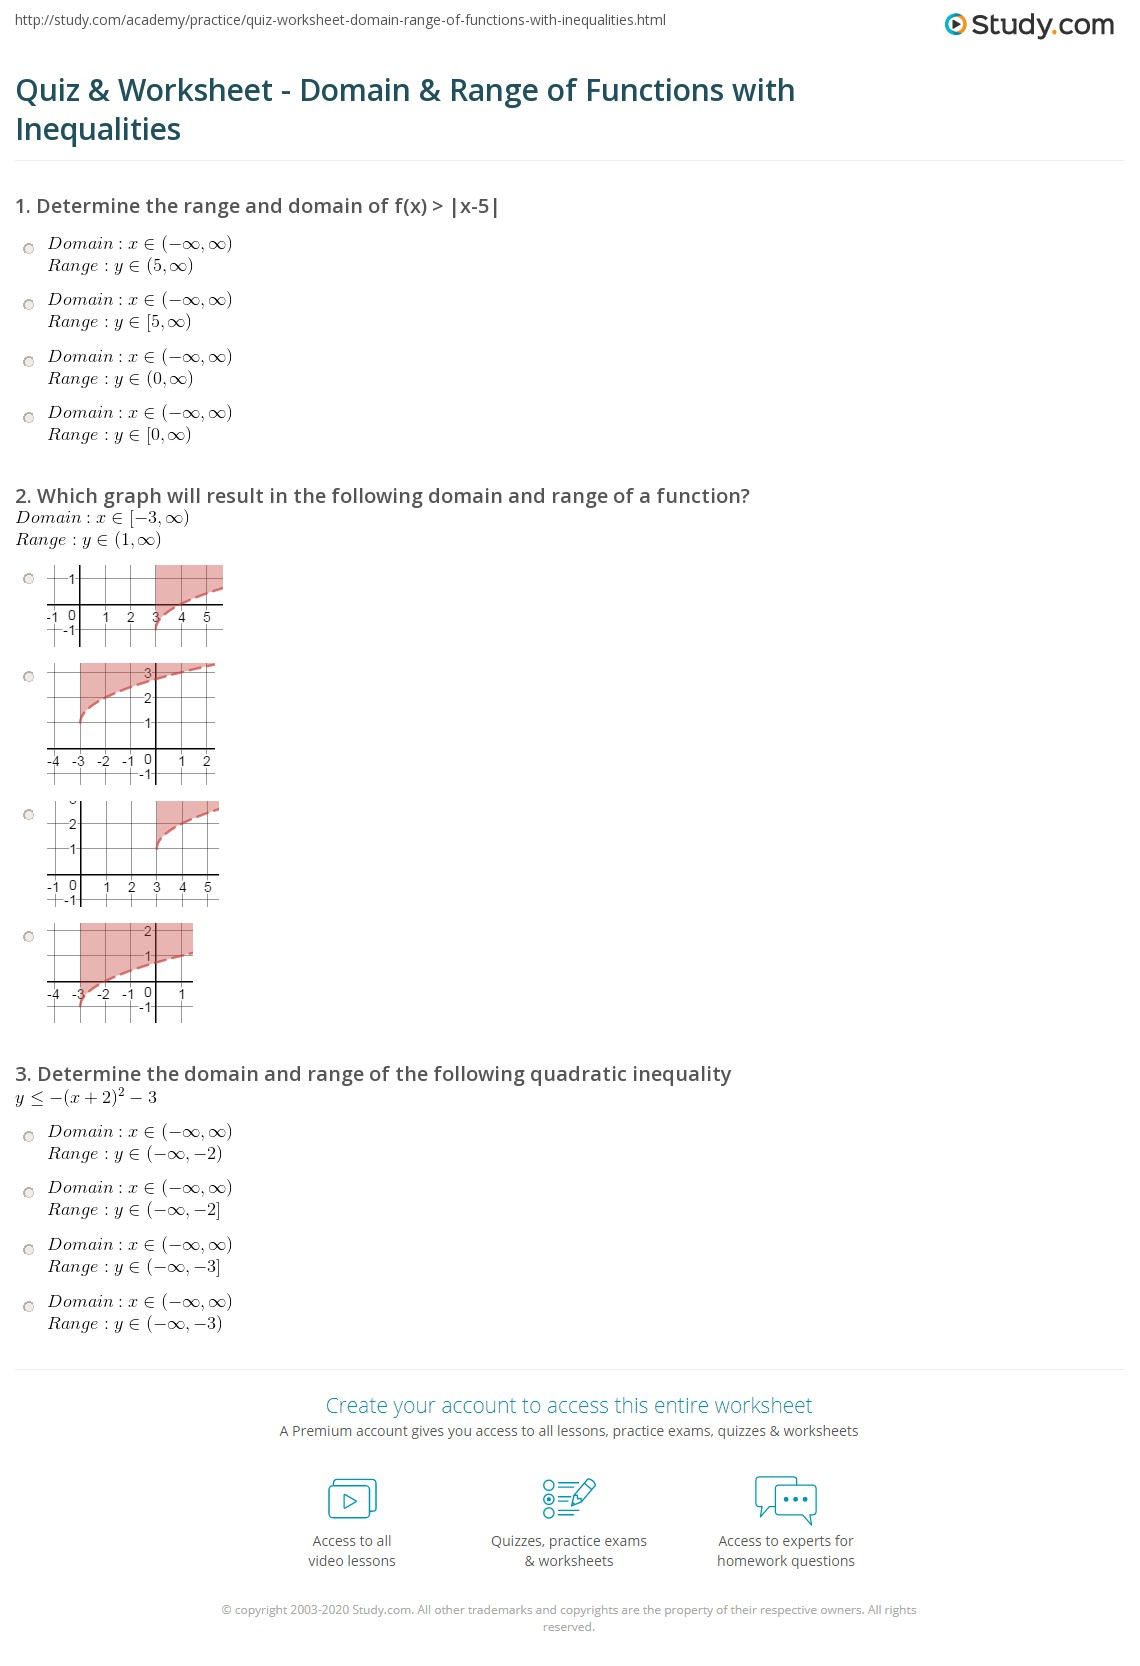 Quiz & Worksheet - Domain & Range of Functions with Inequalities ...